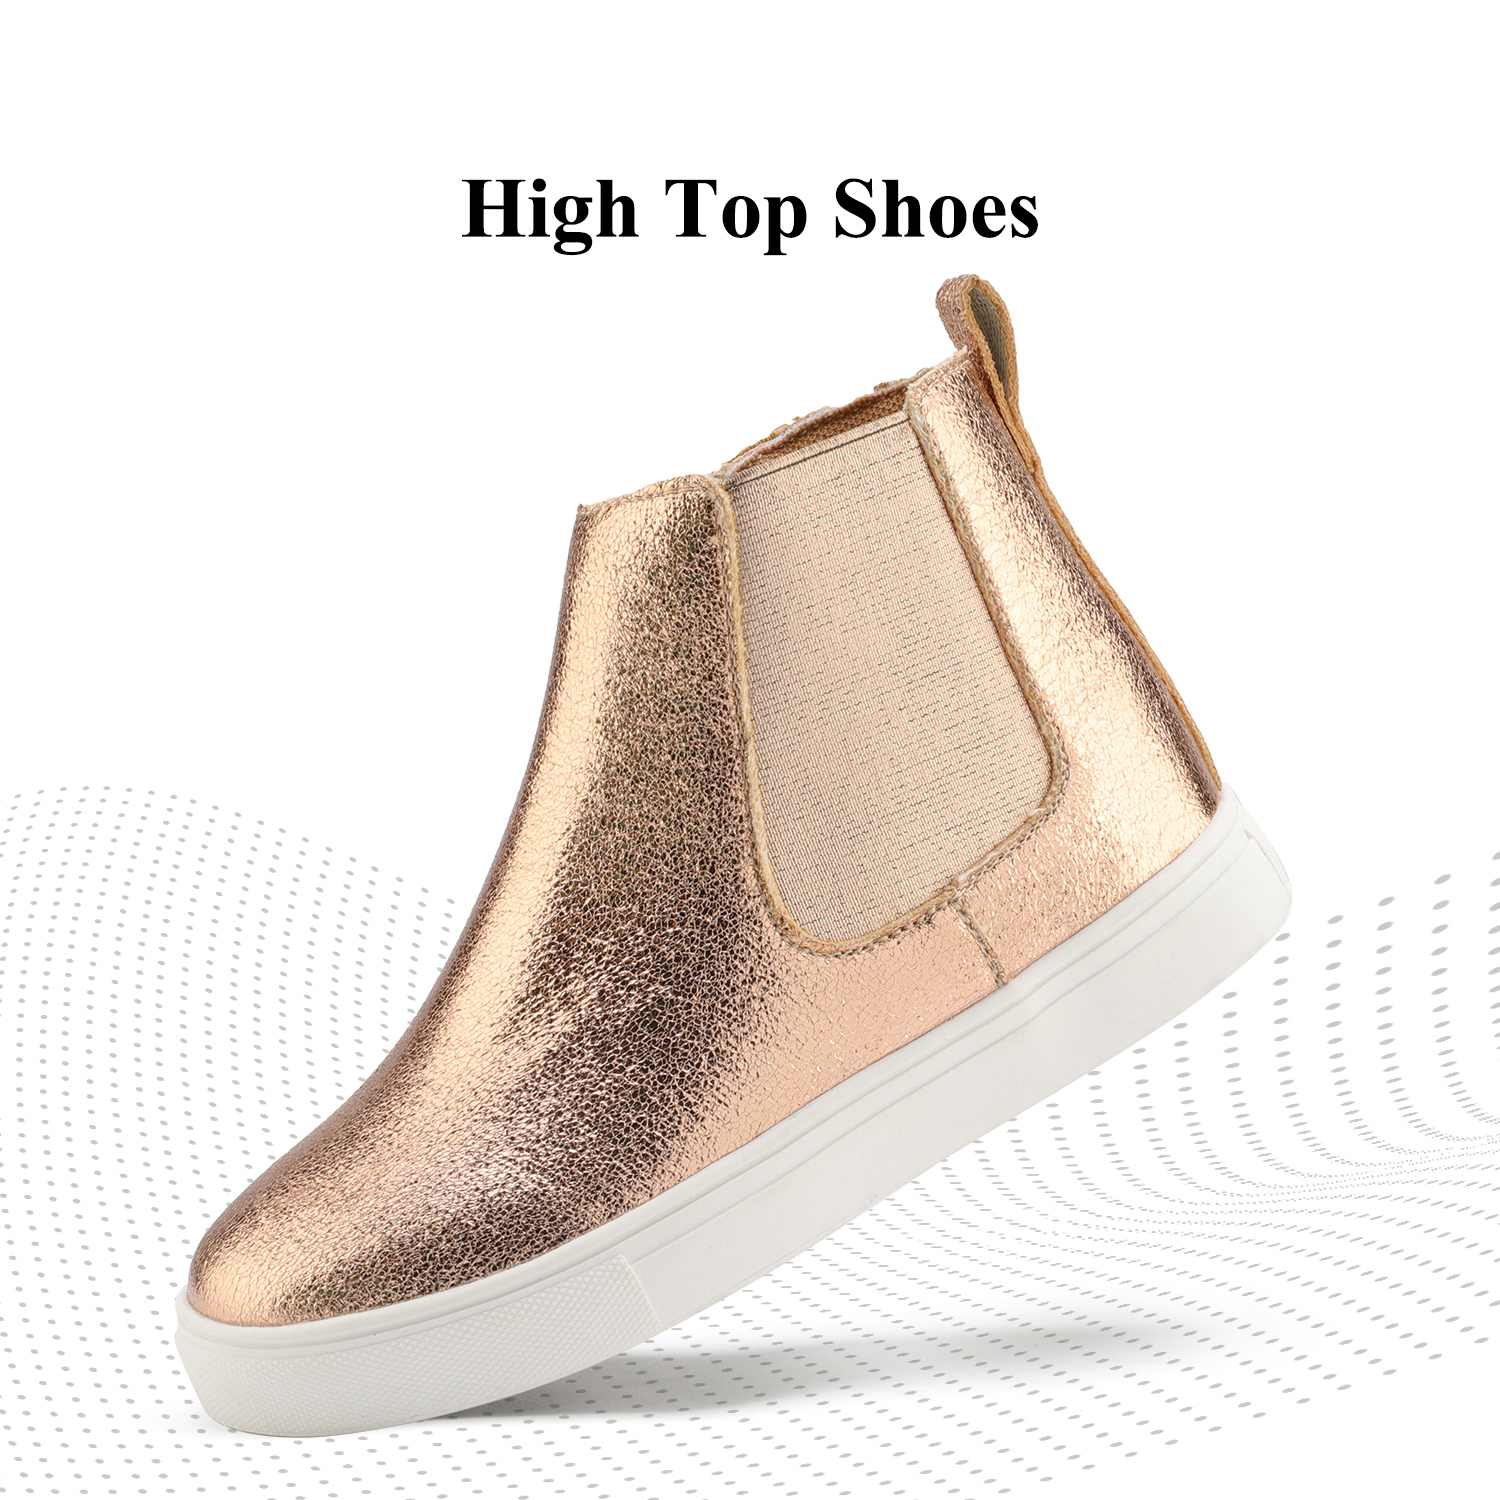 DREAM PAIRS Kids//Toddler Boys Girls Toe Slip On High Top Sneaker Shoes Boots